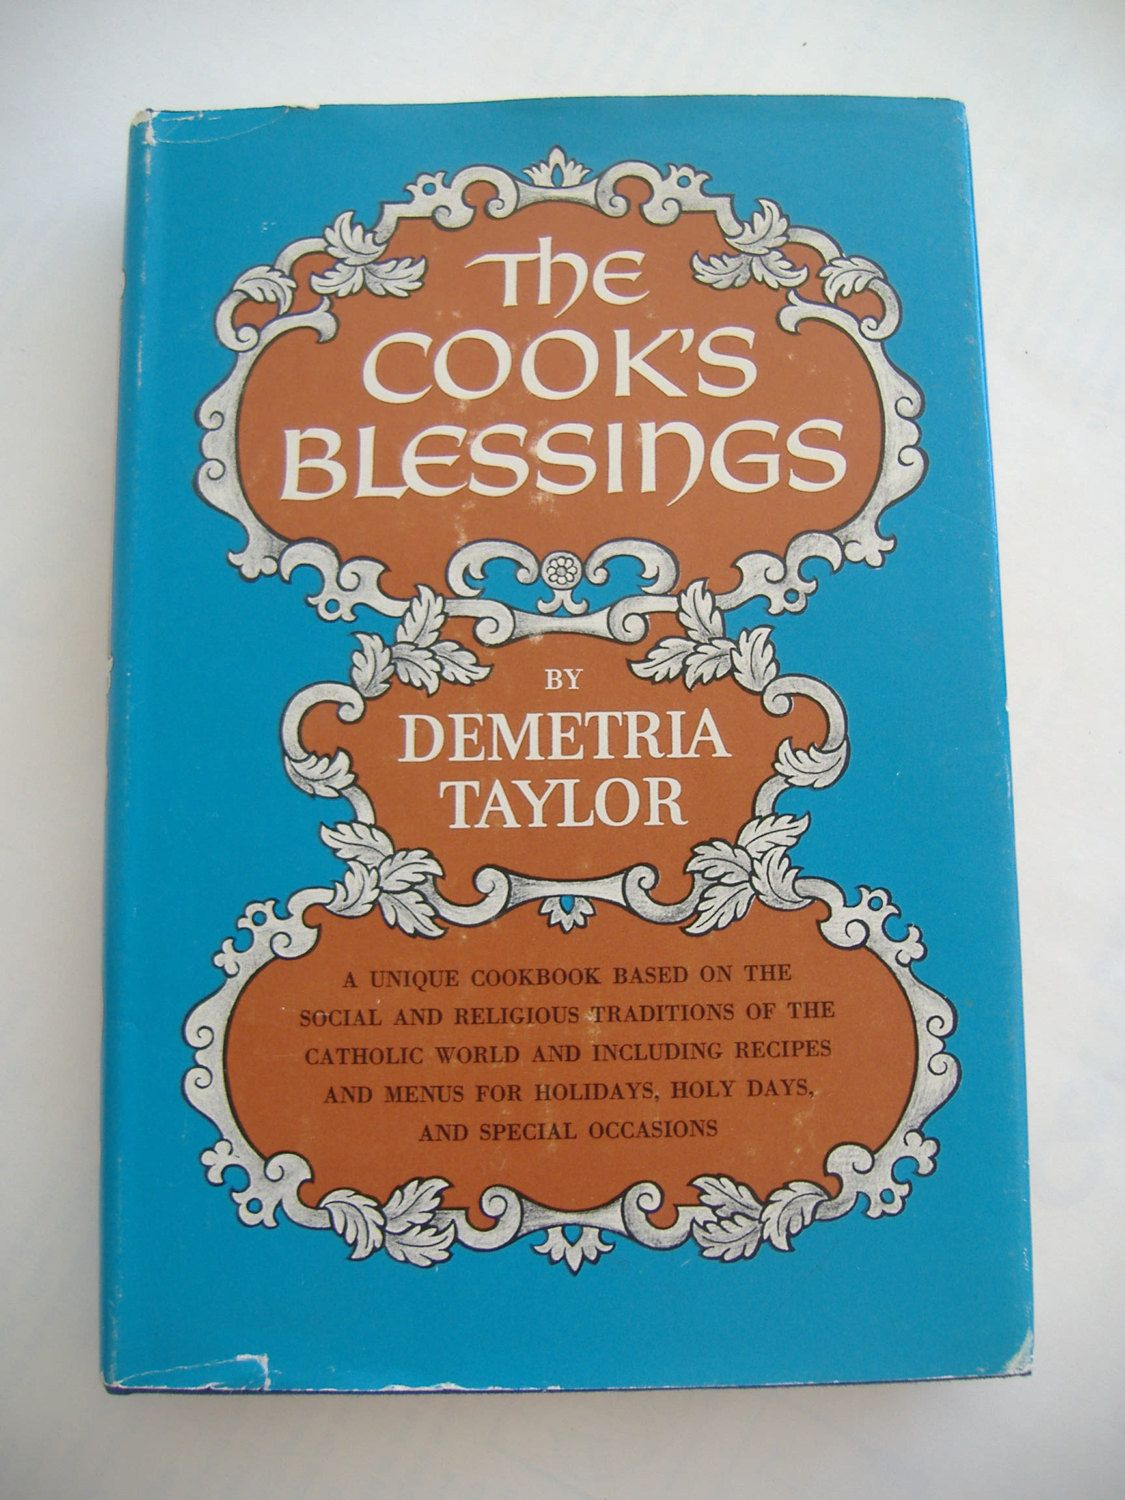 The Cook's Blessings, Hardcover with DJ, 1965, Cookbook, First Printing by RetroSpecial on Etsy https://www.etsy.com/listing/188282618/the-cooks-blessings-hardcover-with-dj